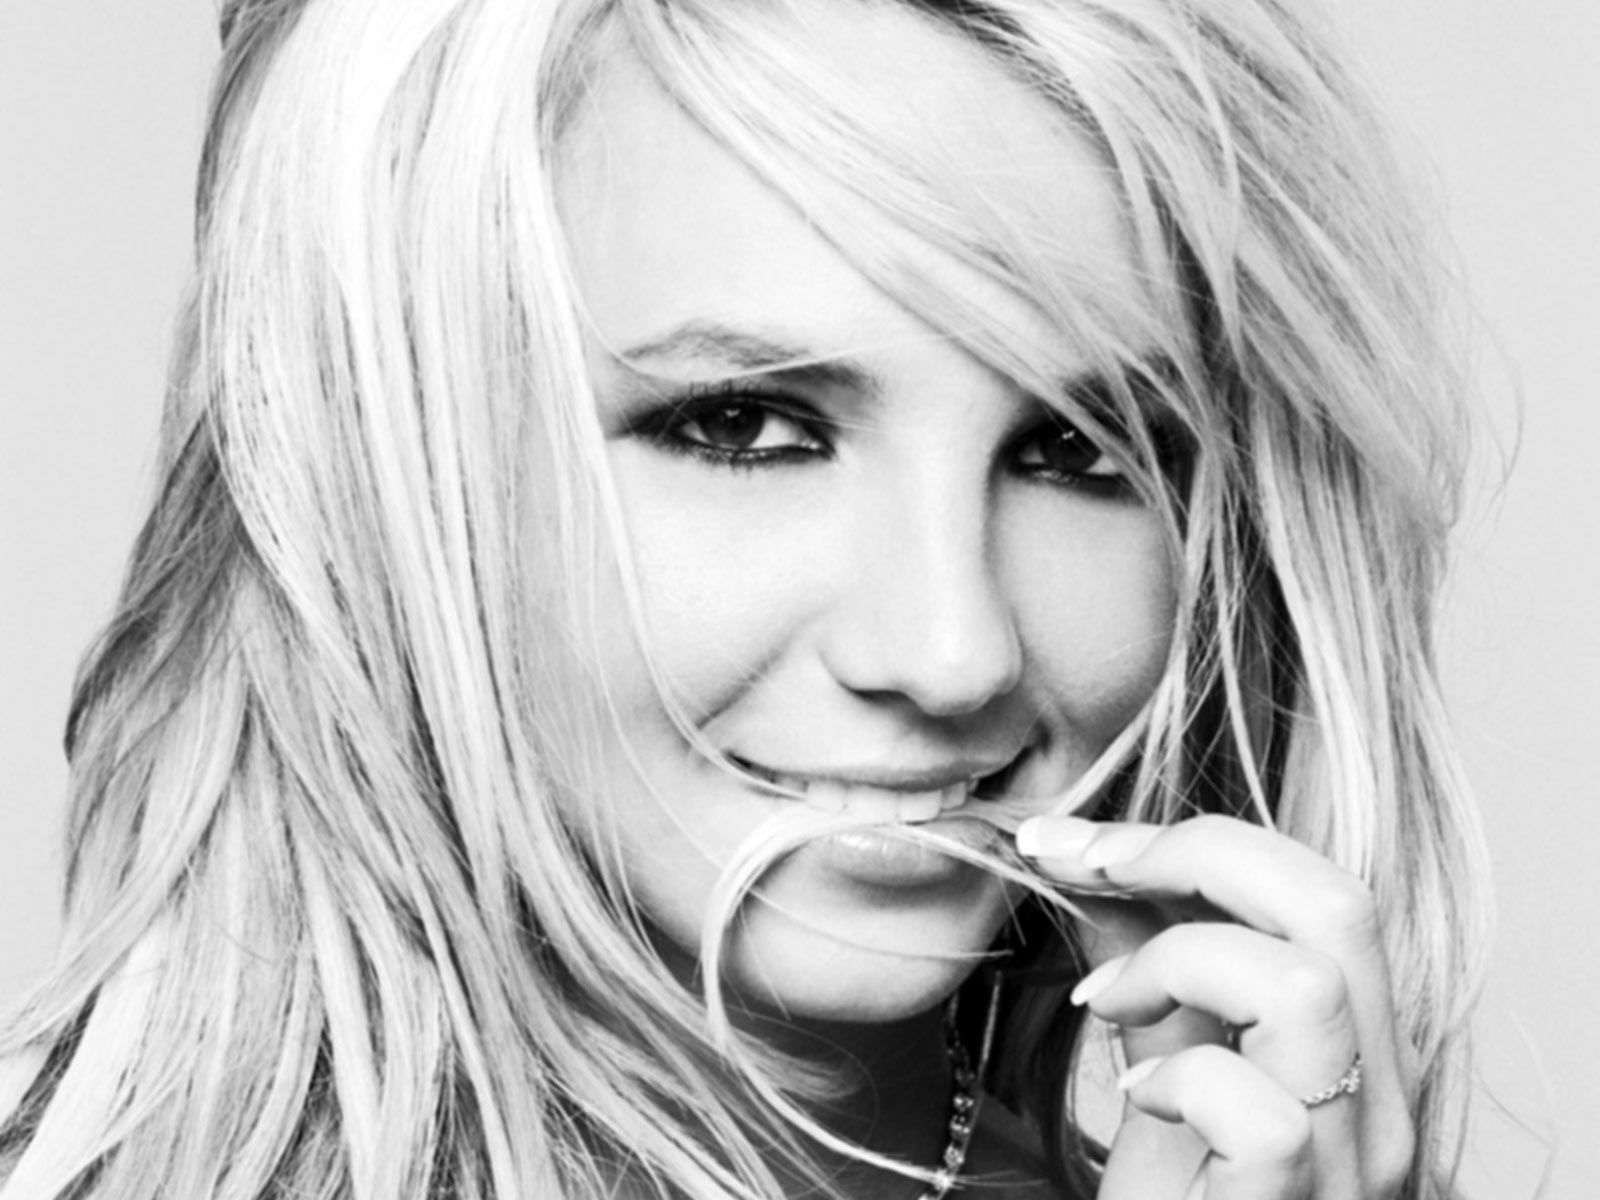 britney spears beautiful - photo #25